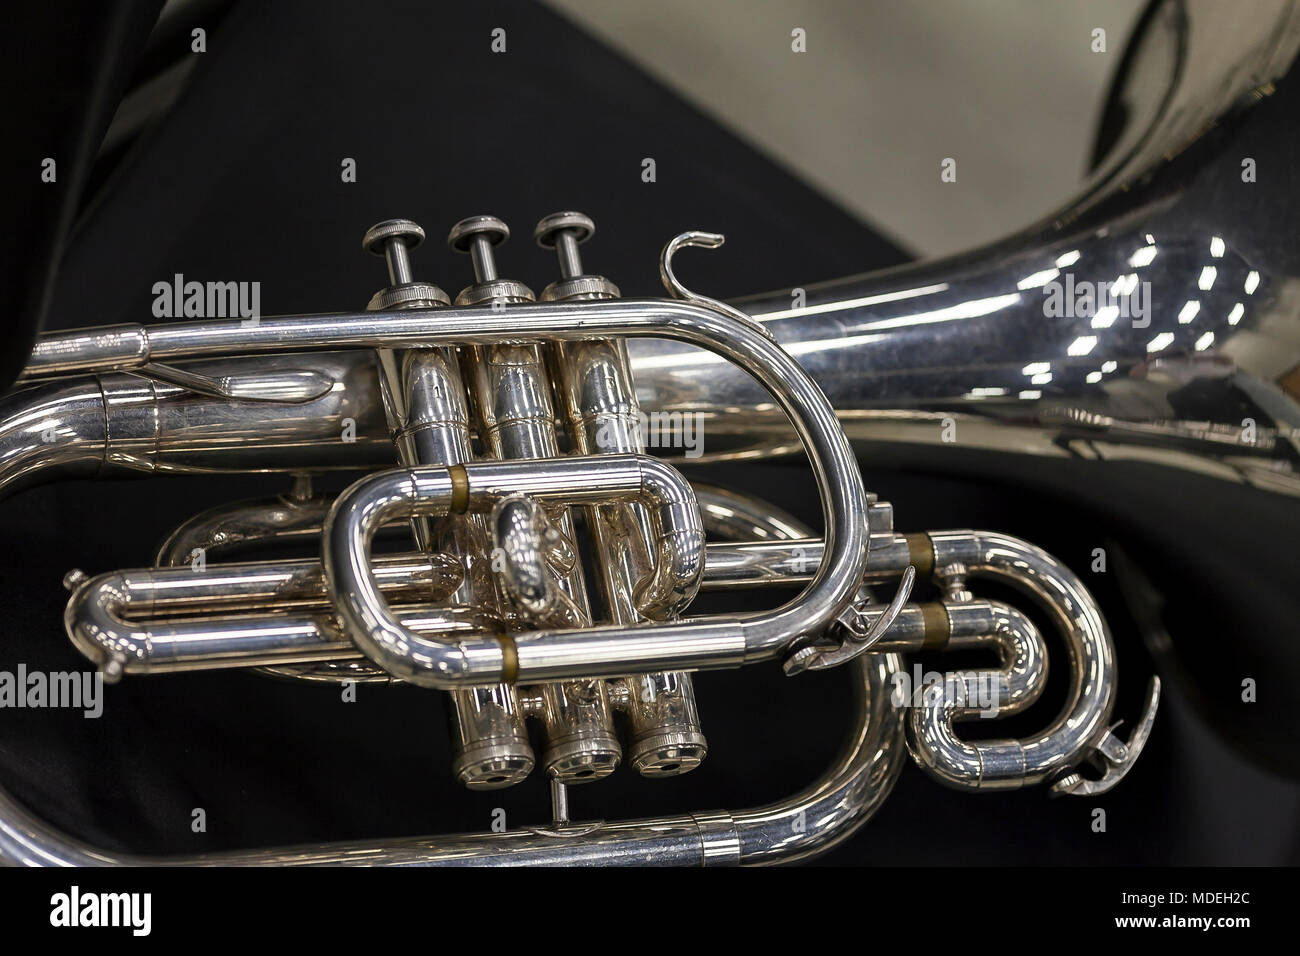 the valves of a marching band mellophone - Stock Image